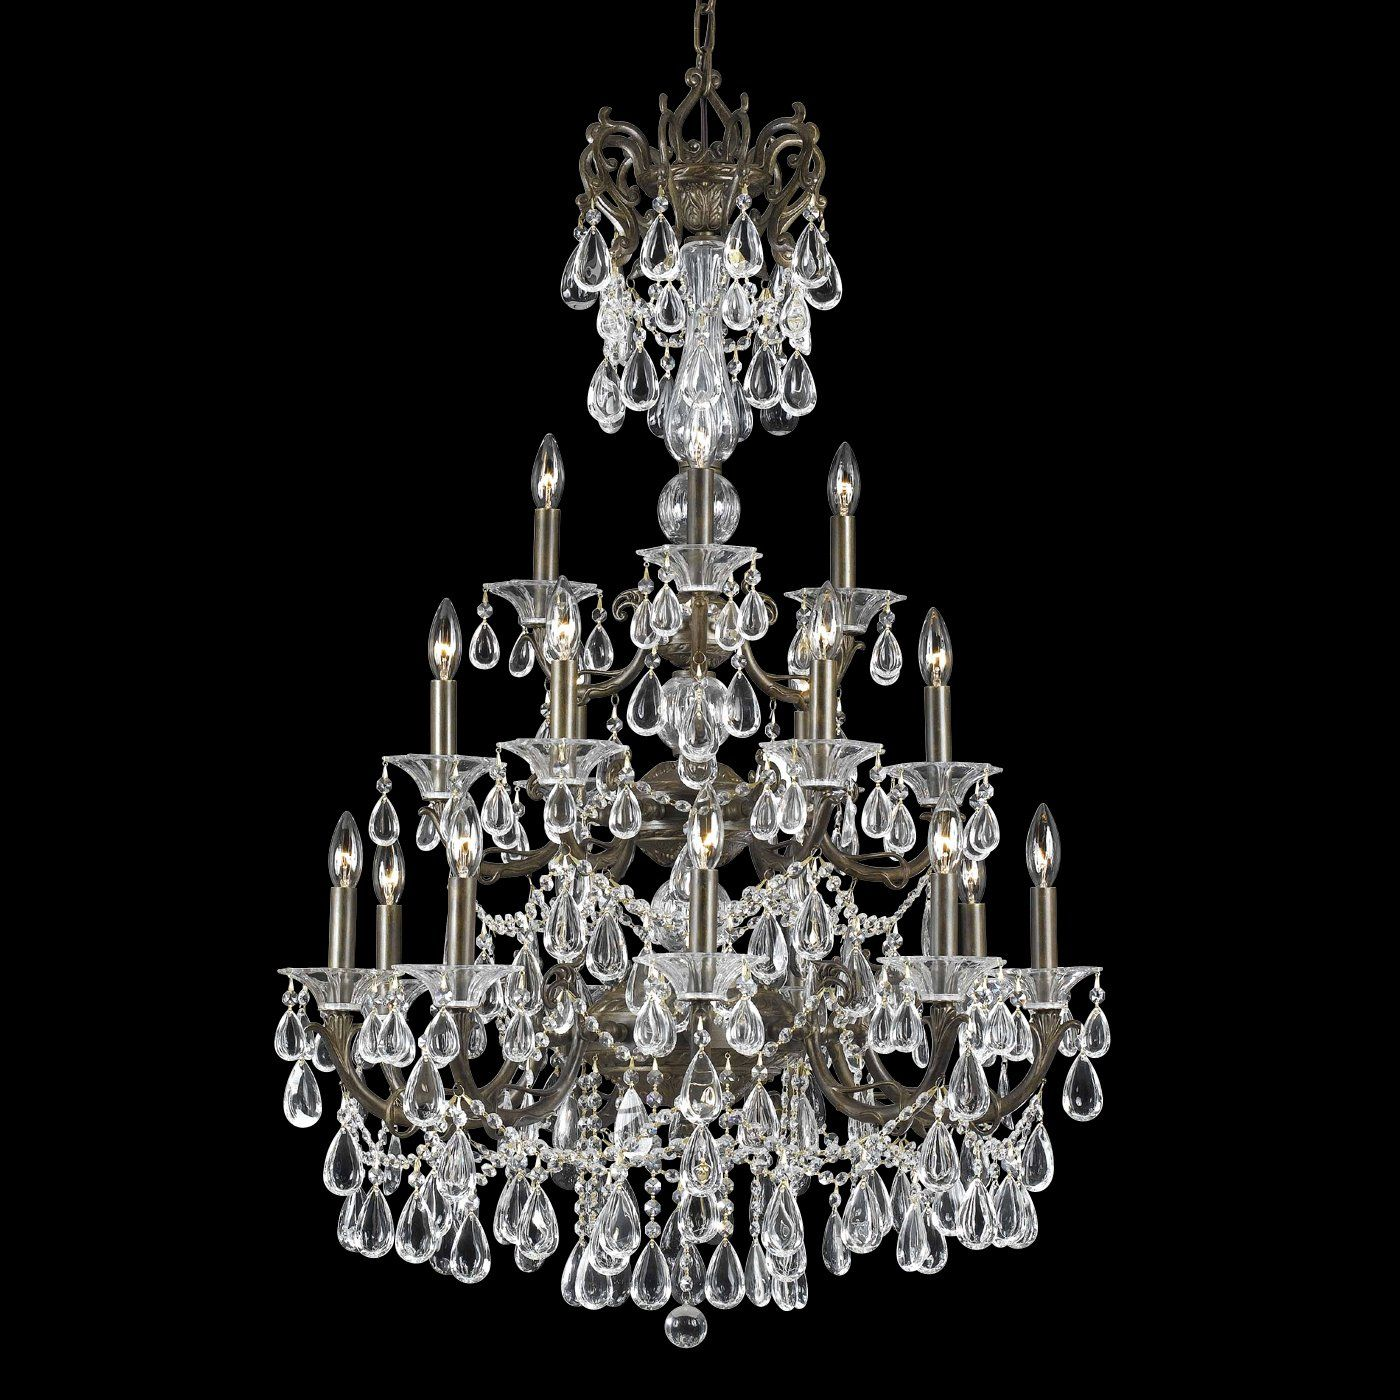 Triarch 18 Light Renaissance Chandelier English Bronze